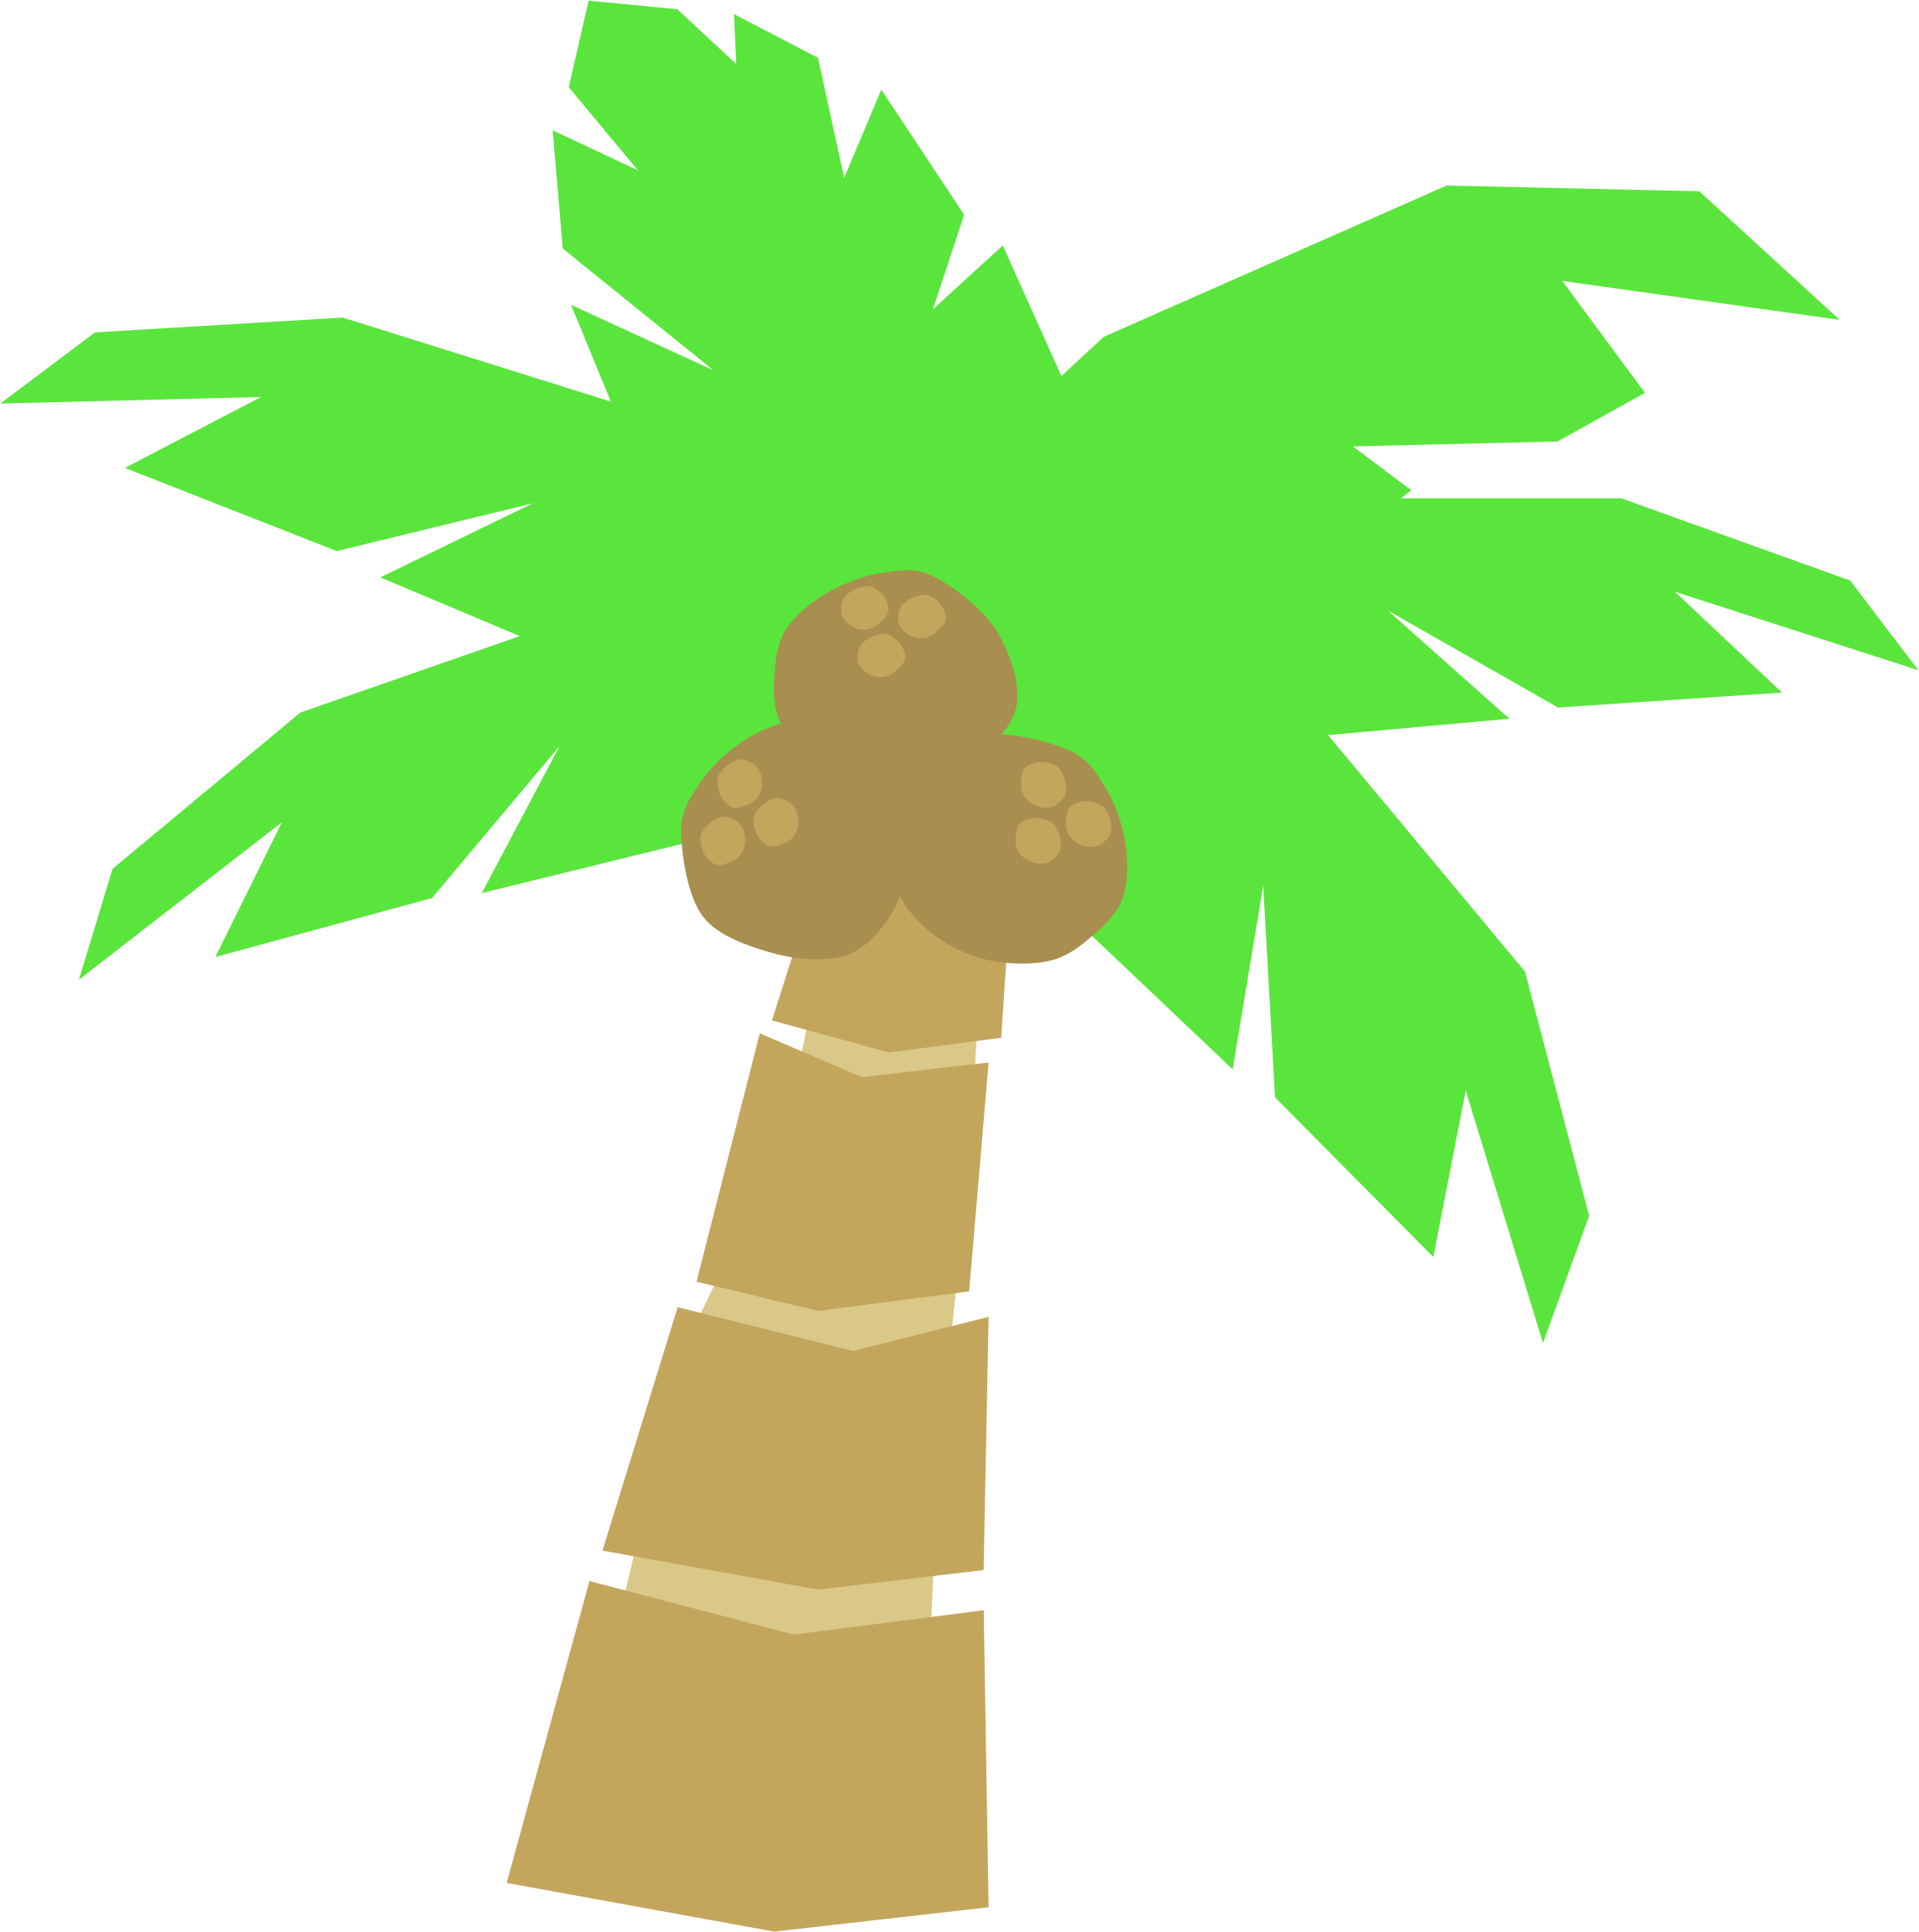 Palm big image png. Tree clipart beach